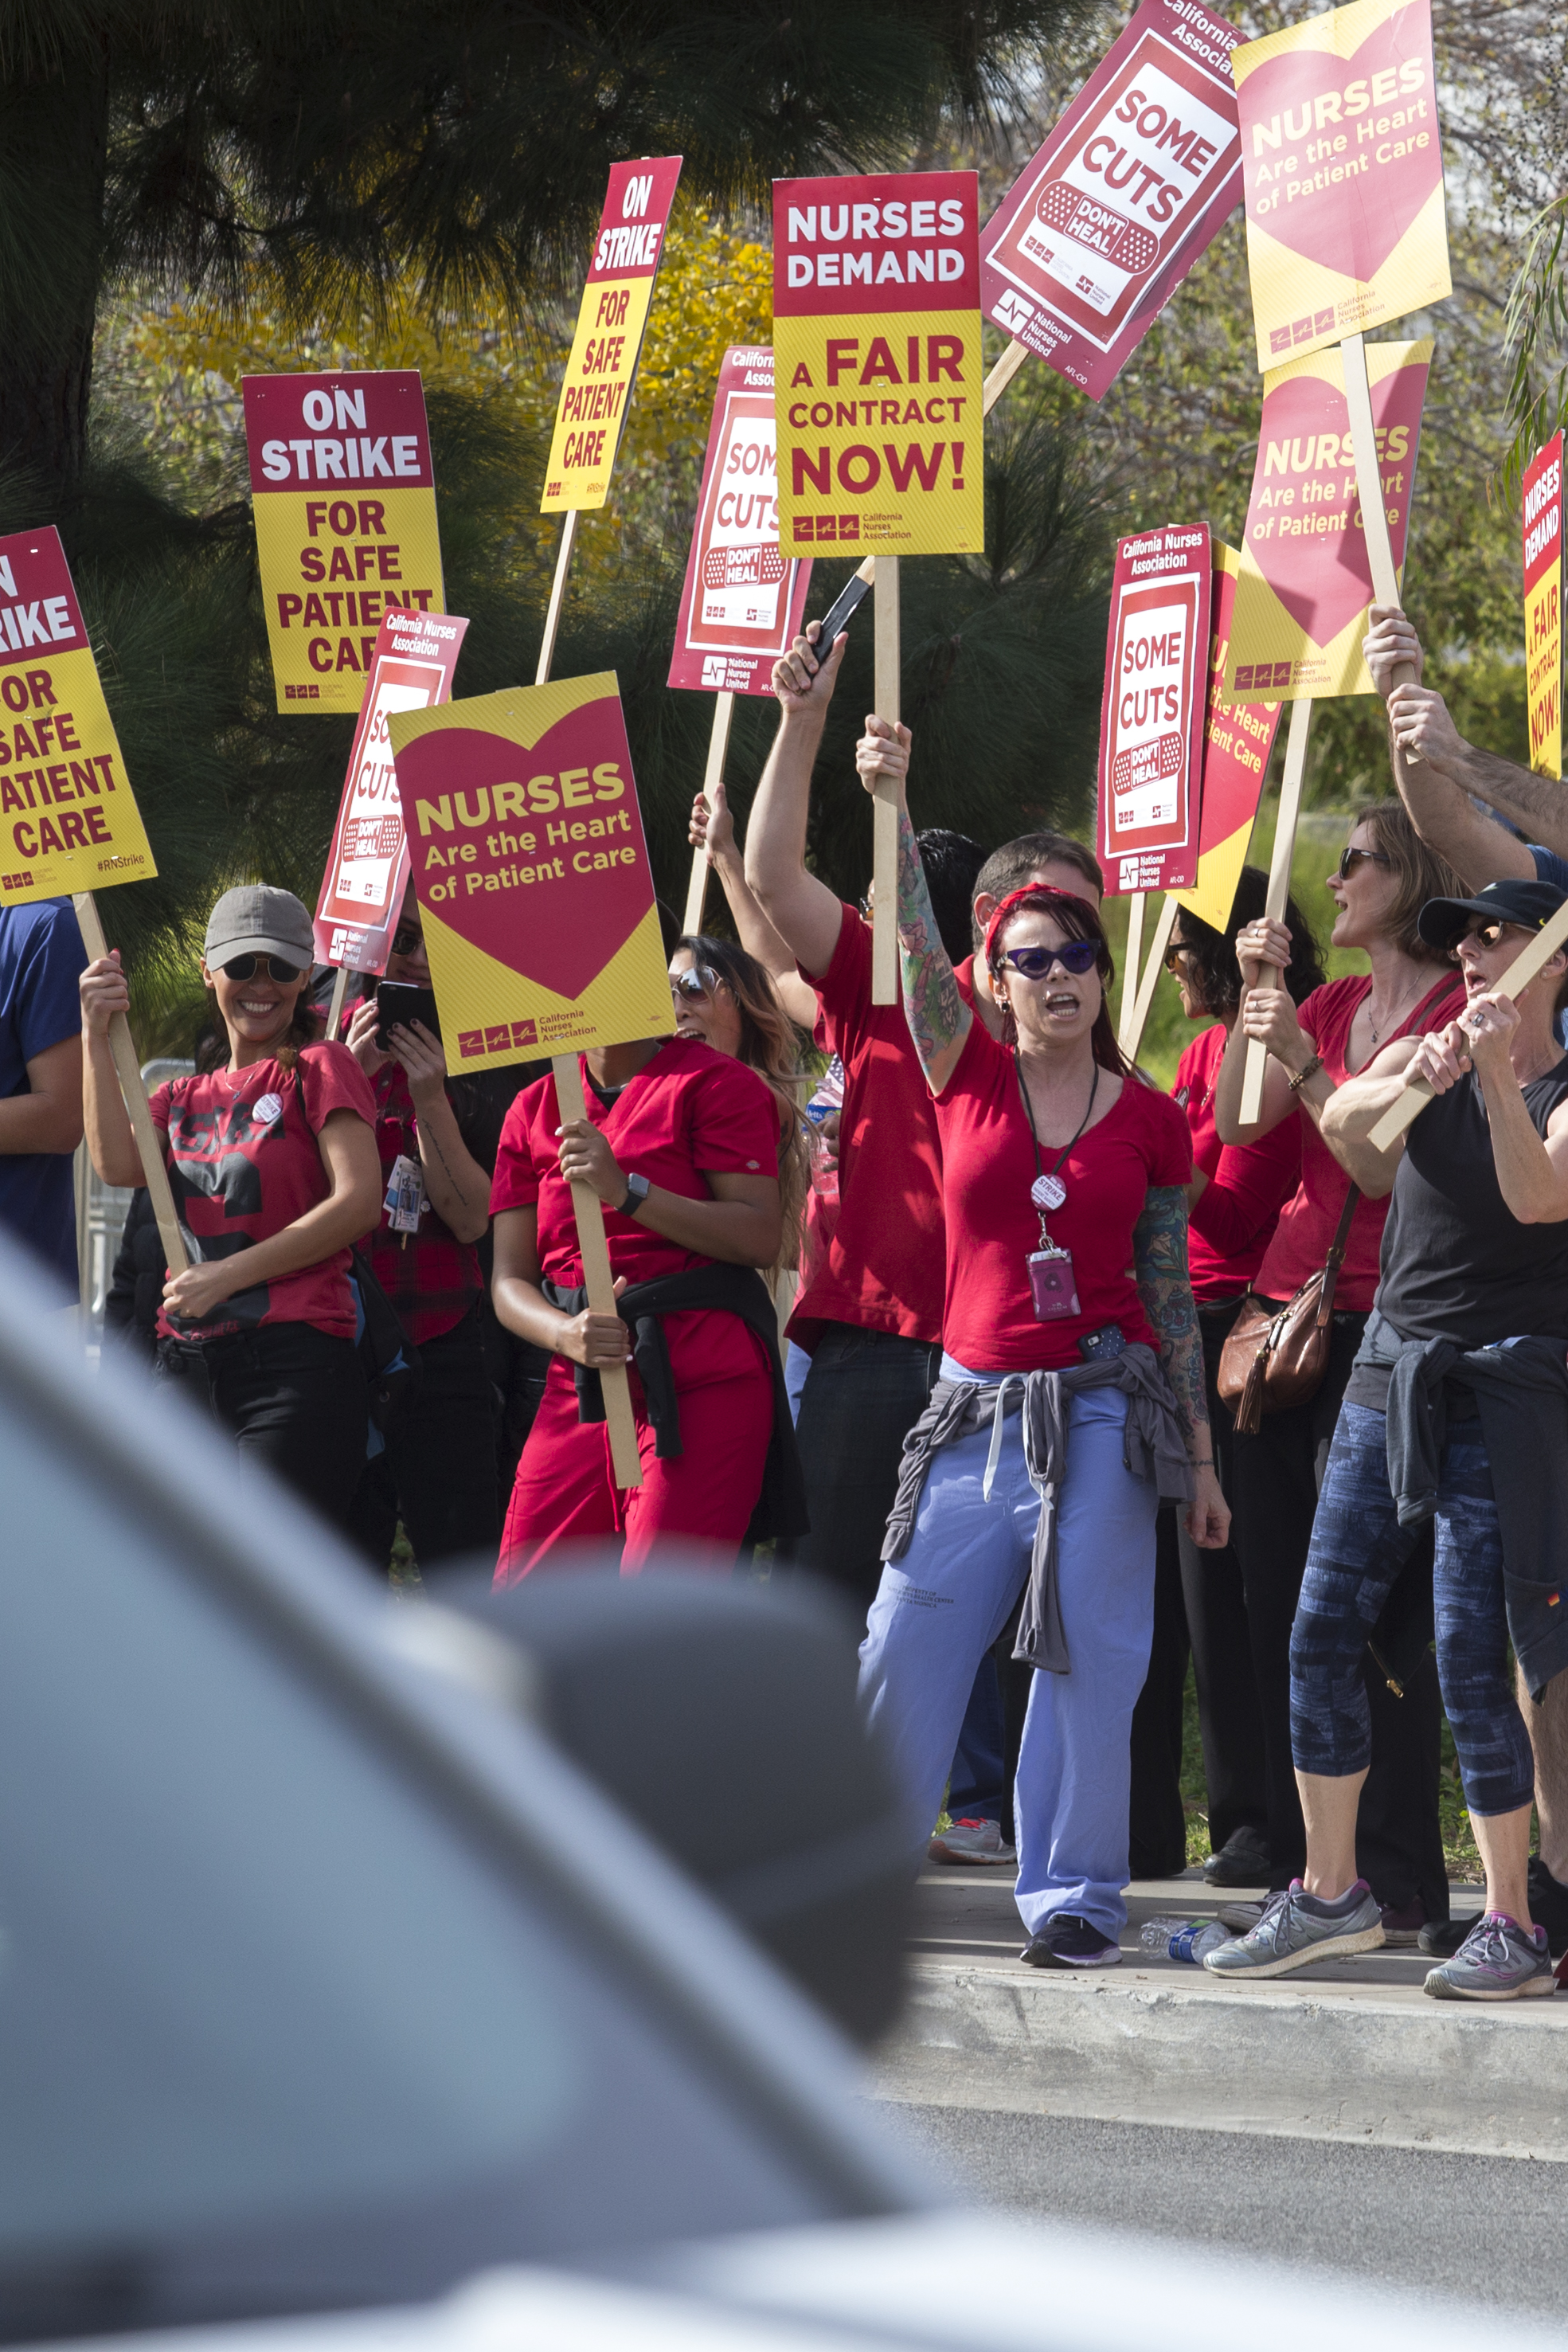 Members of the California Nurses Association protest at a Nurses Strike outside of Providence Saint Johns Health Center in Santa Monica, California on November 27, 2018. The nurses were striking over the unfair treatment they are receiving from Providence Health and Services. (Zane Meyer-Thornton/Corsair Photo)